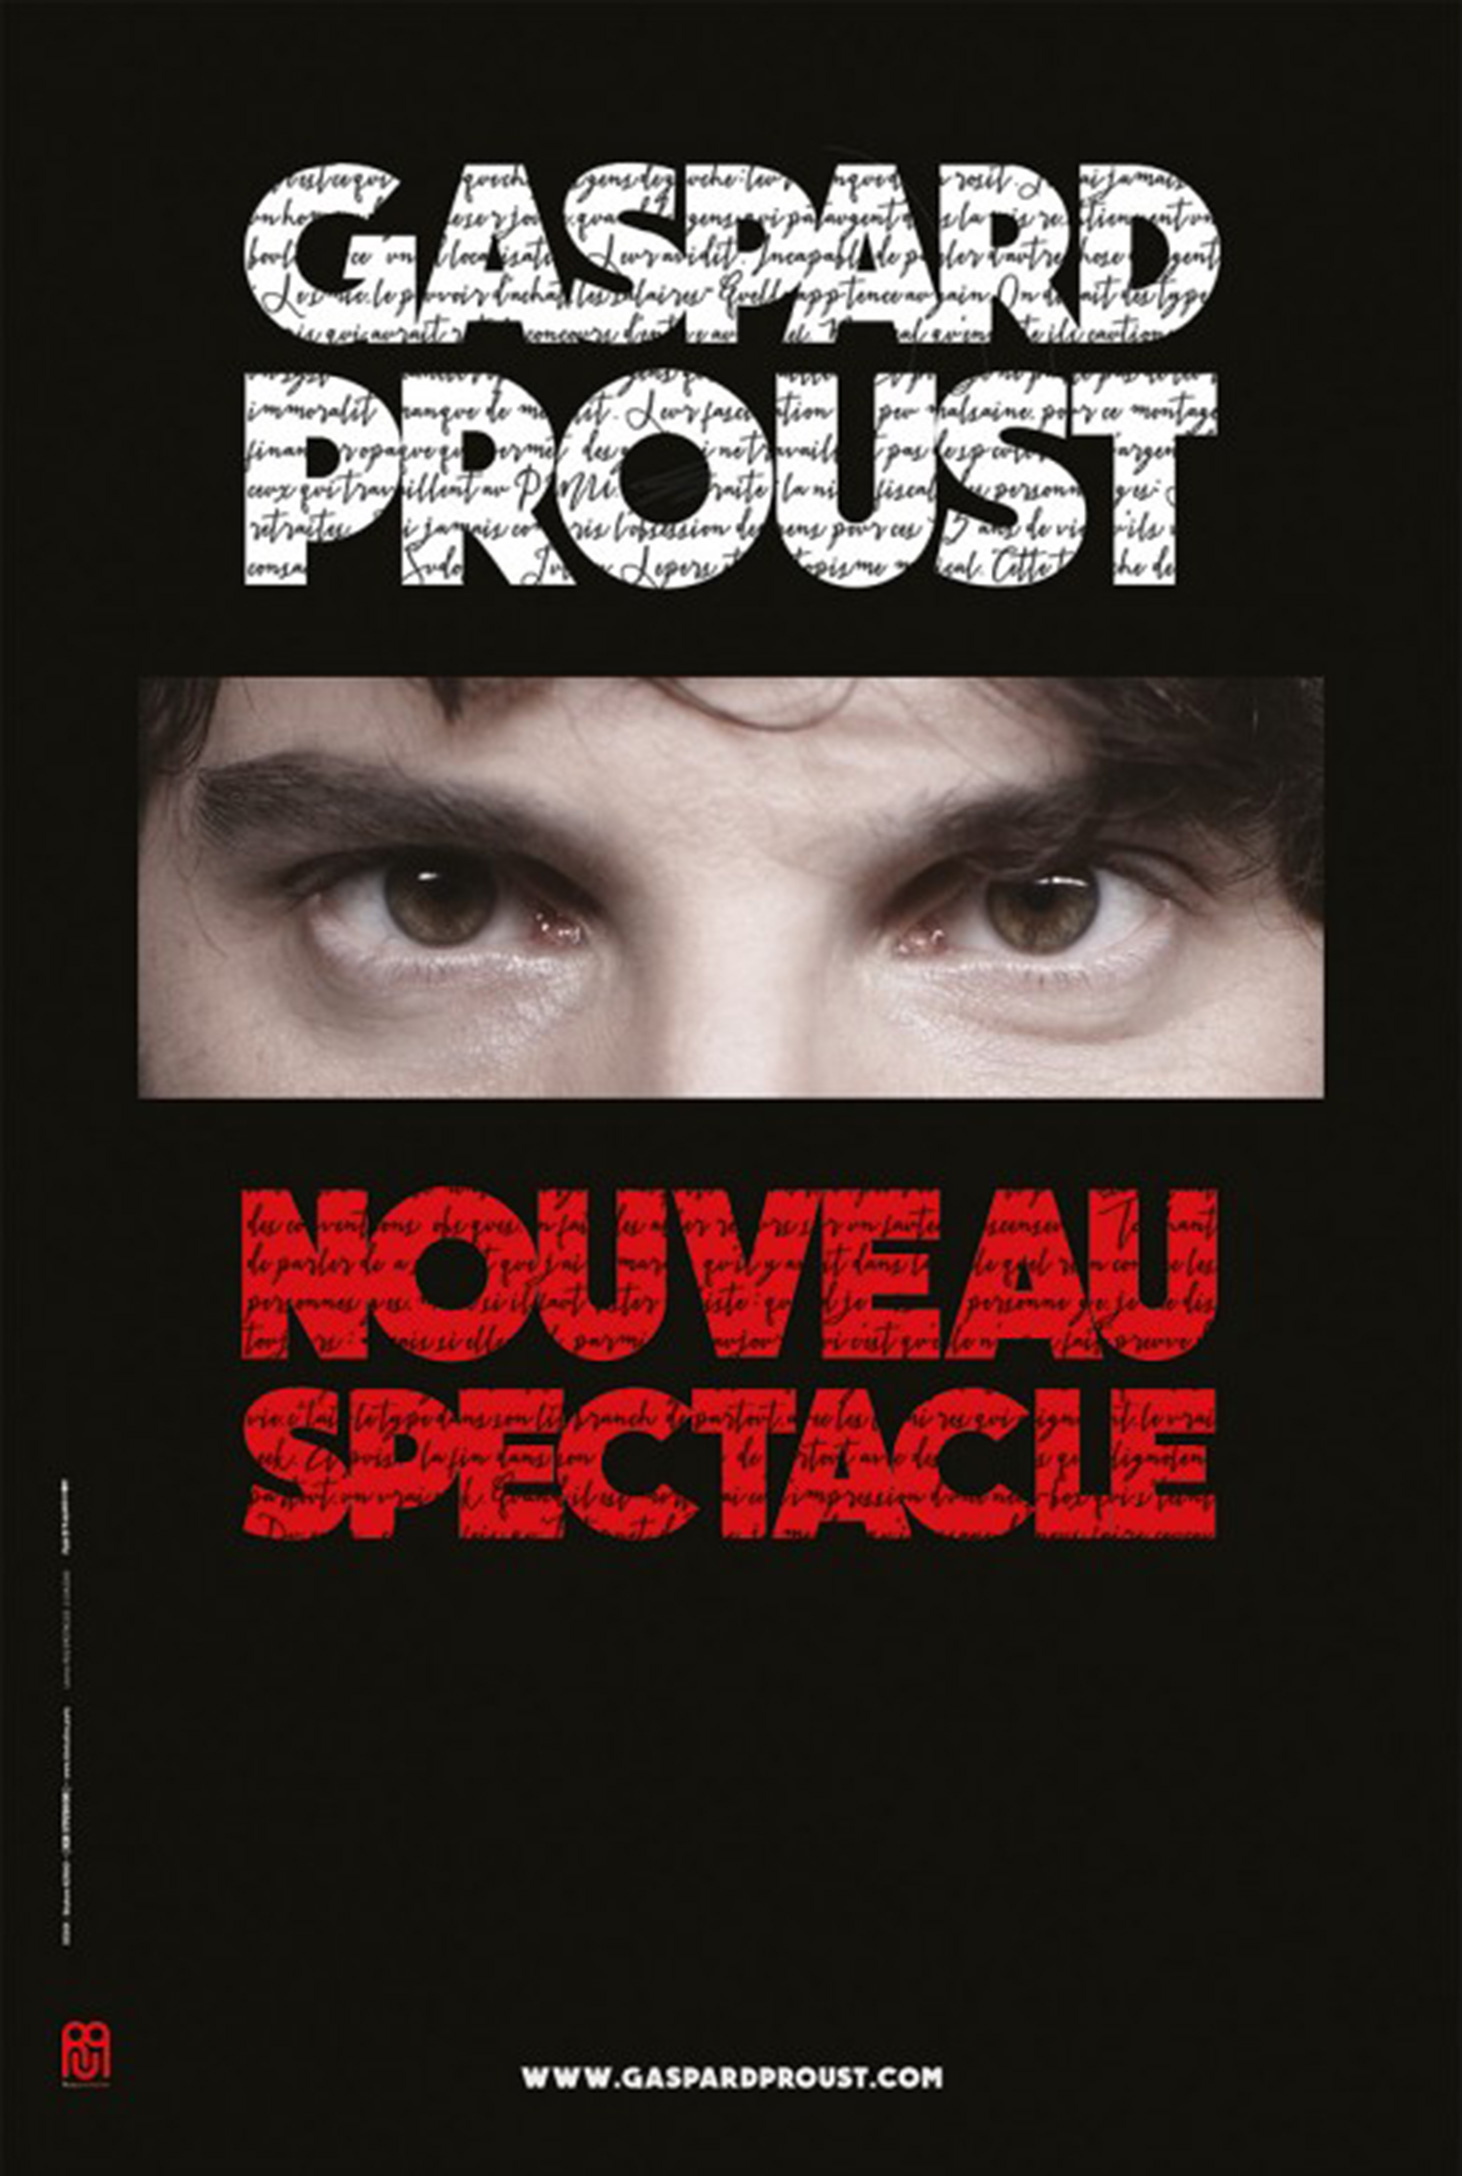 Gaspard-Proust_210417G